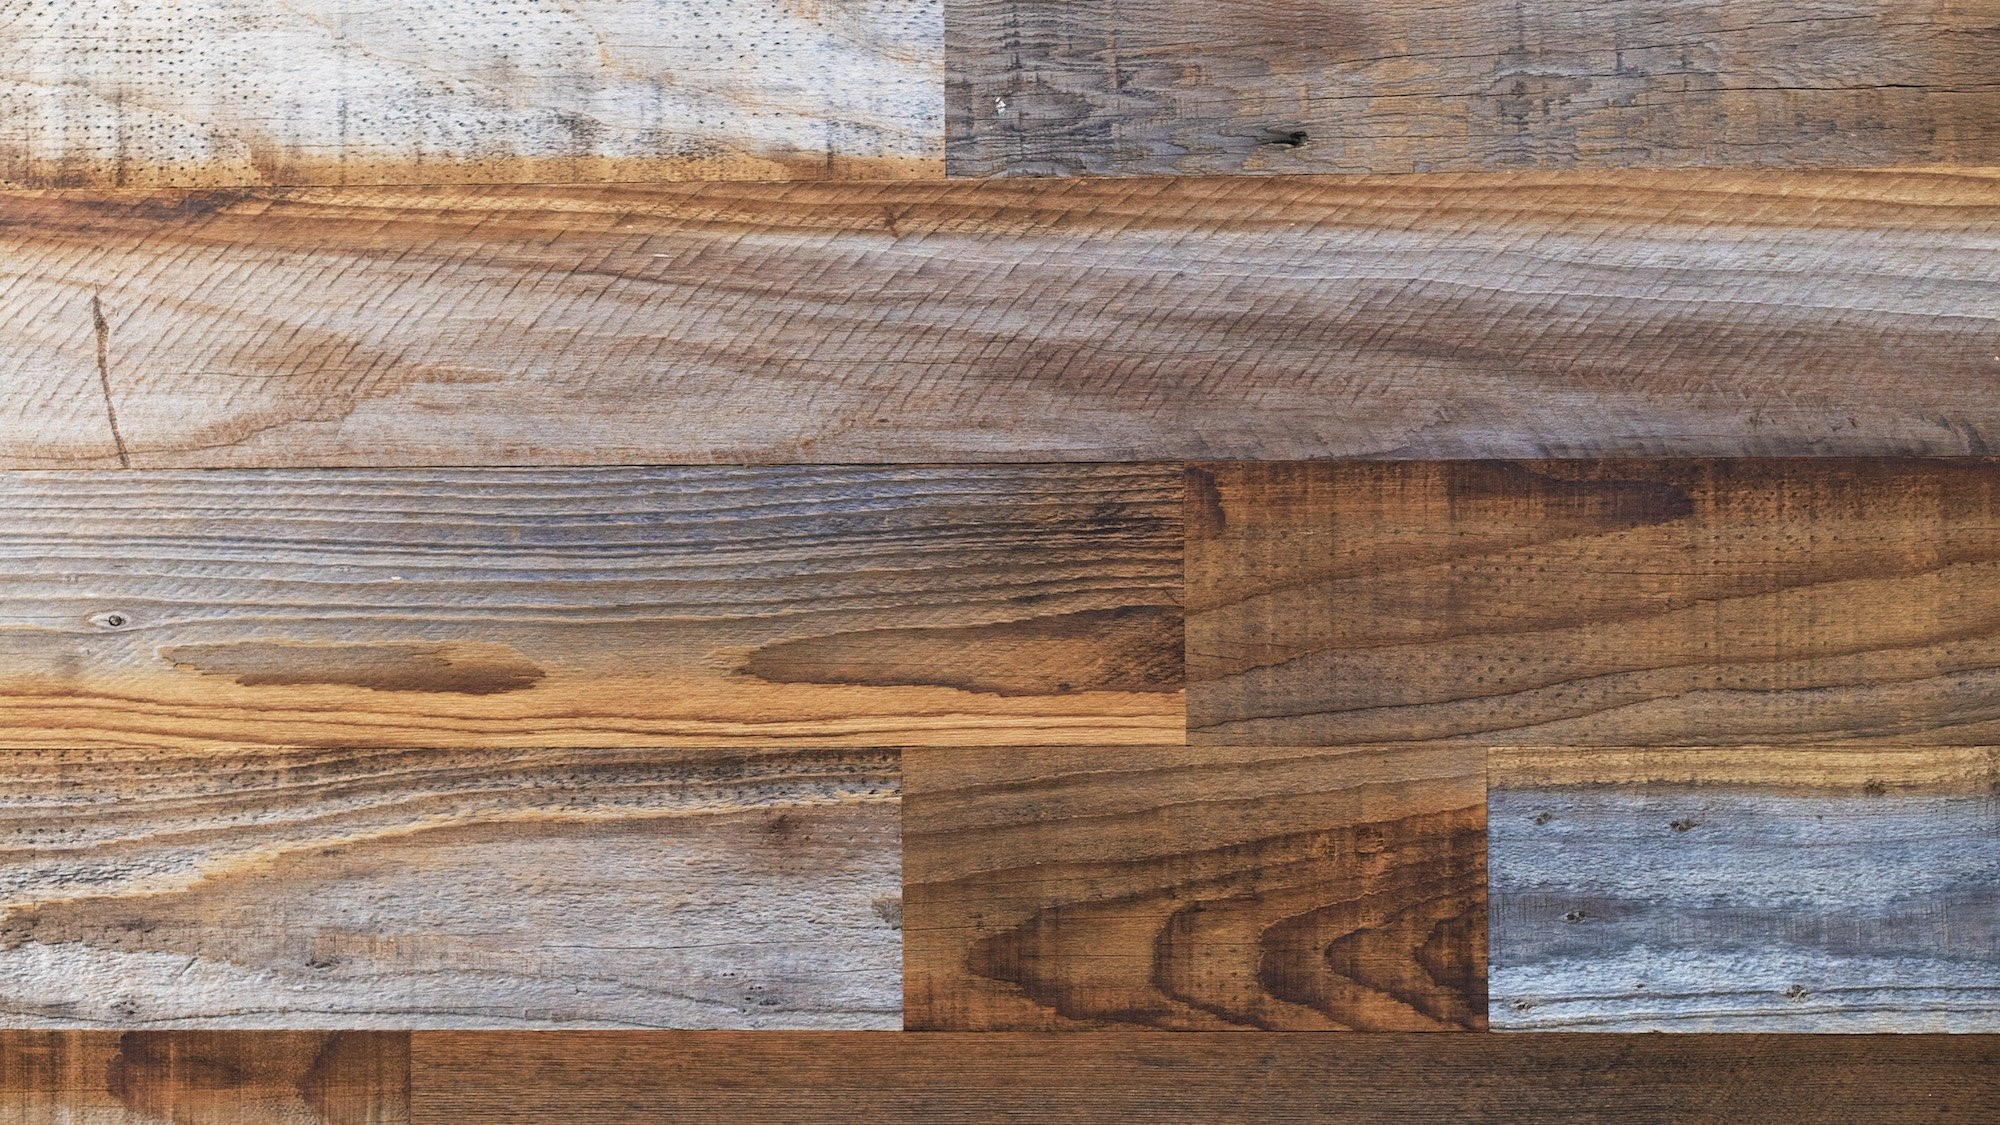 Stikwood Reclaimed Pine Wall Decor, Sierra Silver/Dark Brown by Stikwood